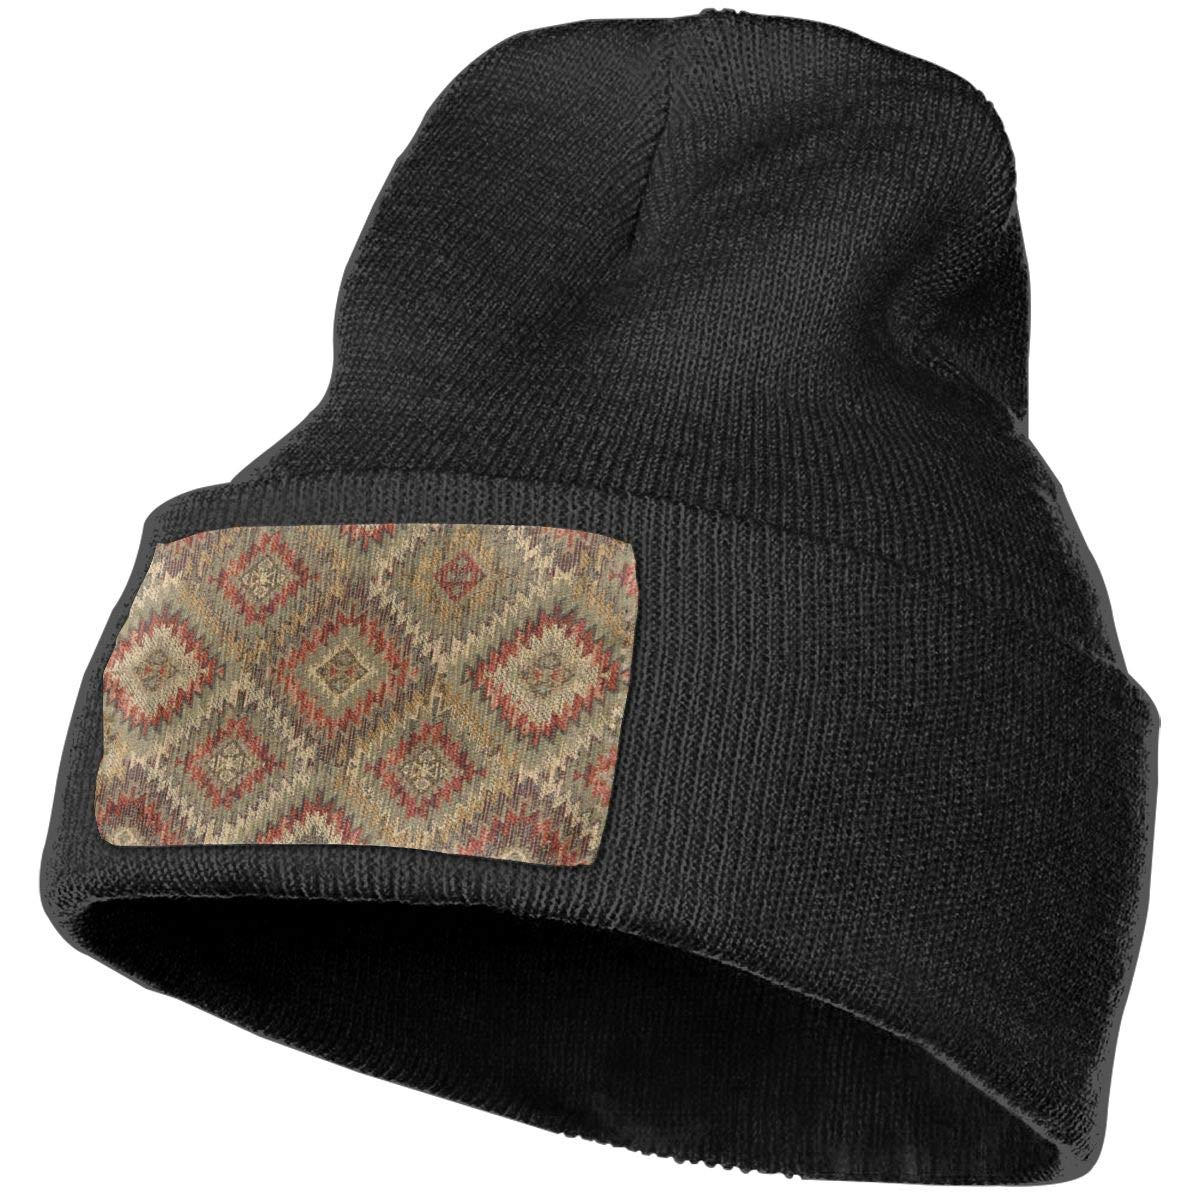 JimHappy Retro Pattern Hat for Men and Women Winter Warm Hats Knit Slouchy Thick Skull Cap